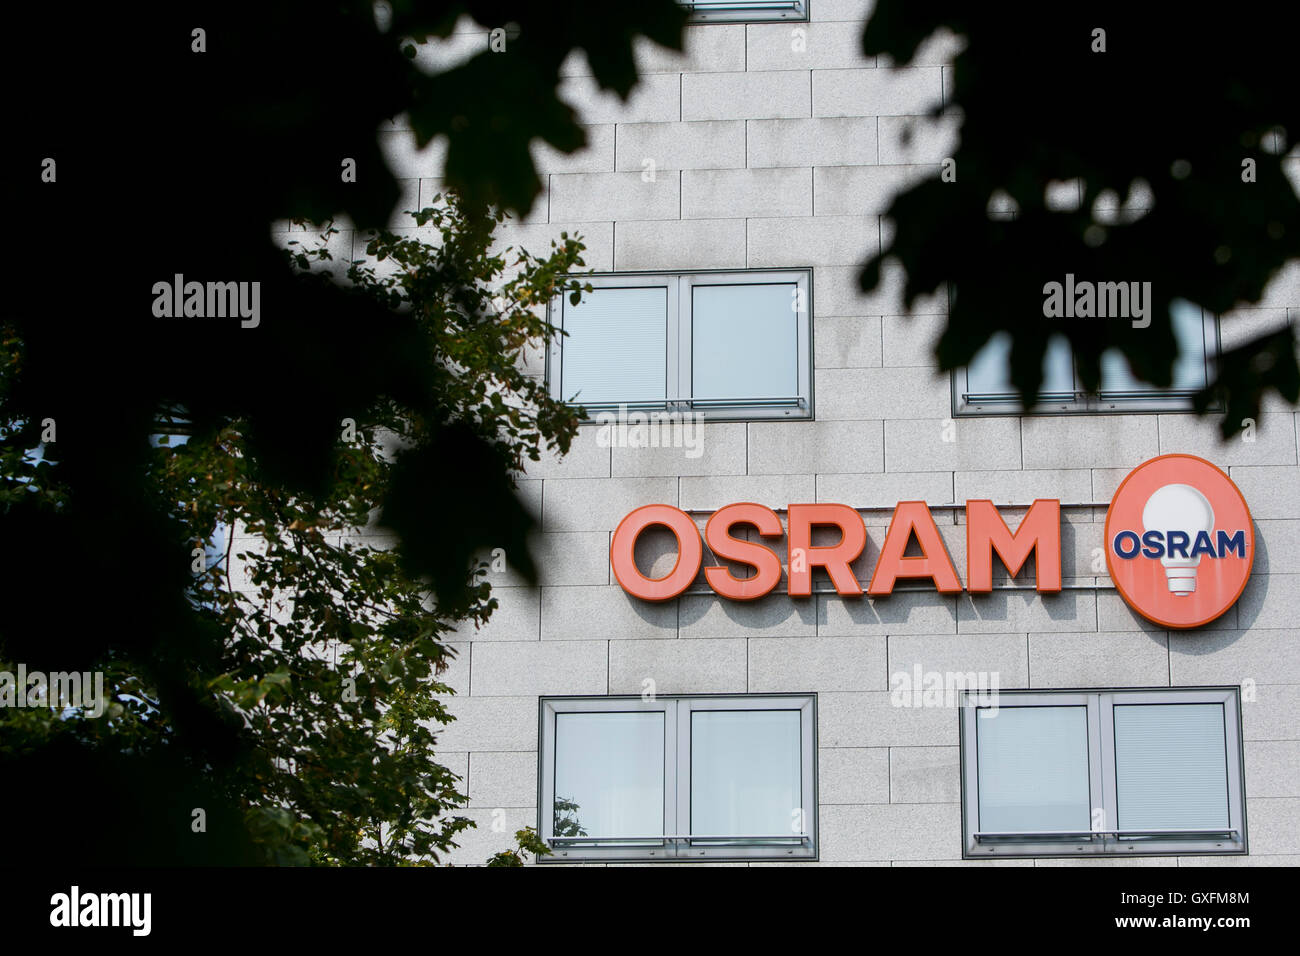 A logo sign outside of facility occupied by Osram in Milan, Italy on September 3, 2016. Stock Photo